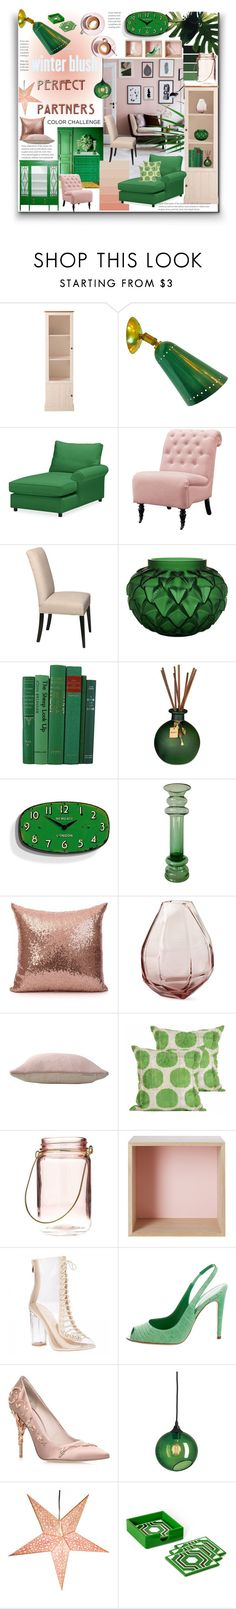 """""""Color Challenge"""" by marionmeyer ❤ liked on Polyvore featuring interior, interiors, interior design, home, home decor, interior decorating, Martha Stewart, Pottery Barn, Home Decorators Collection and DutchCrafters"""